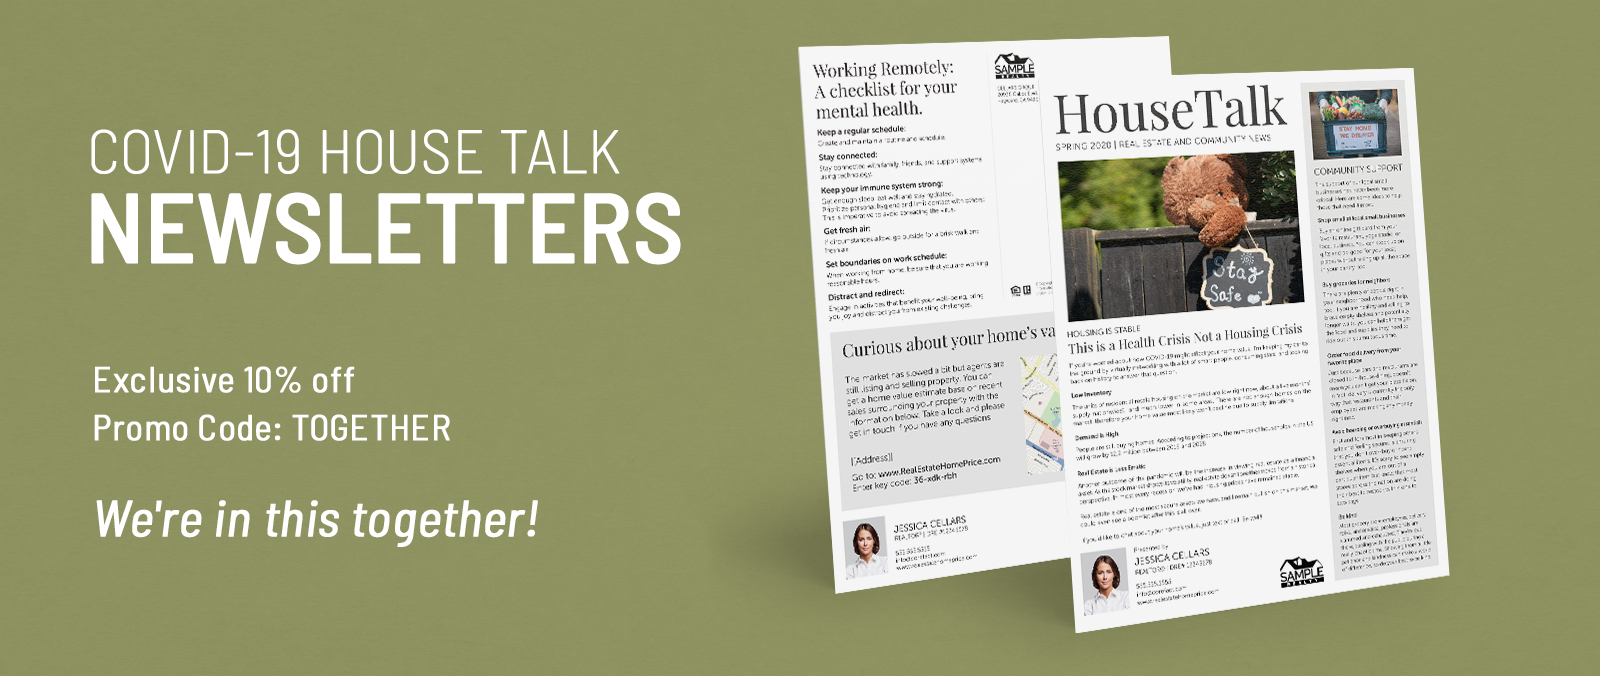 COVID-19 House Talk Series Newsletters